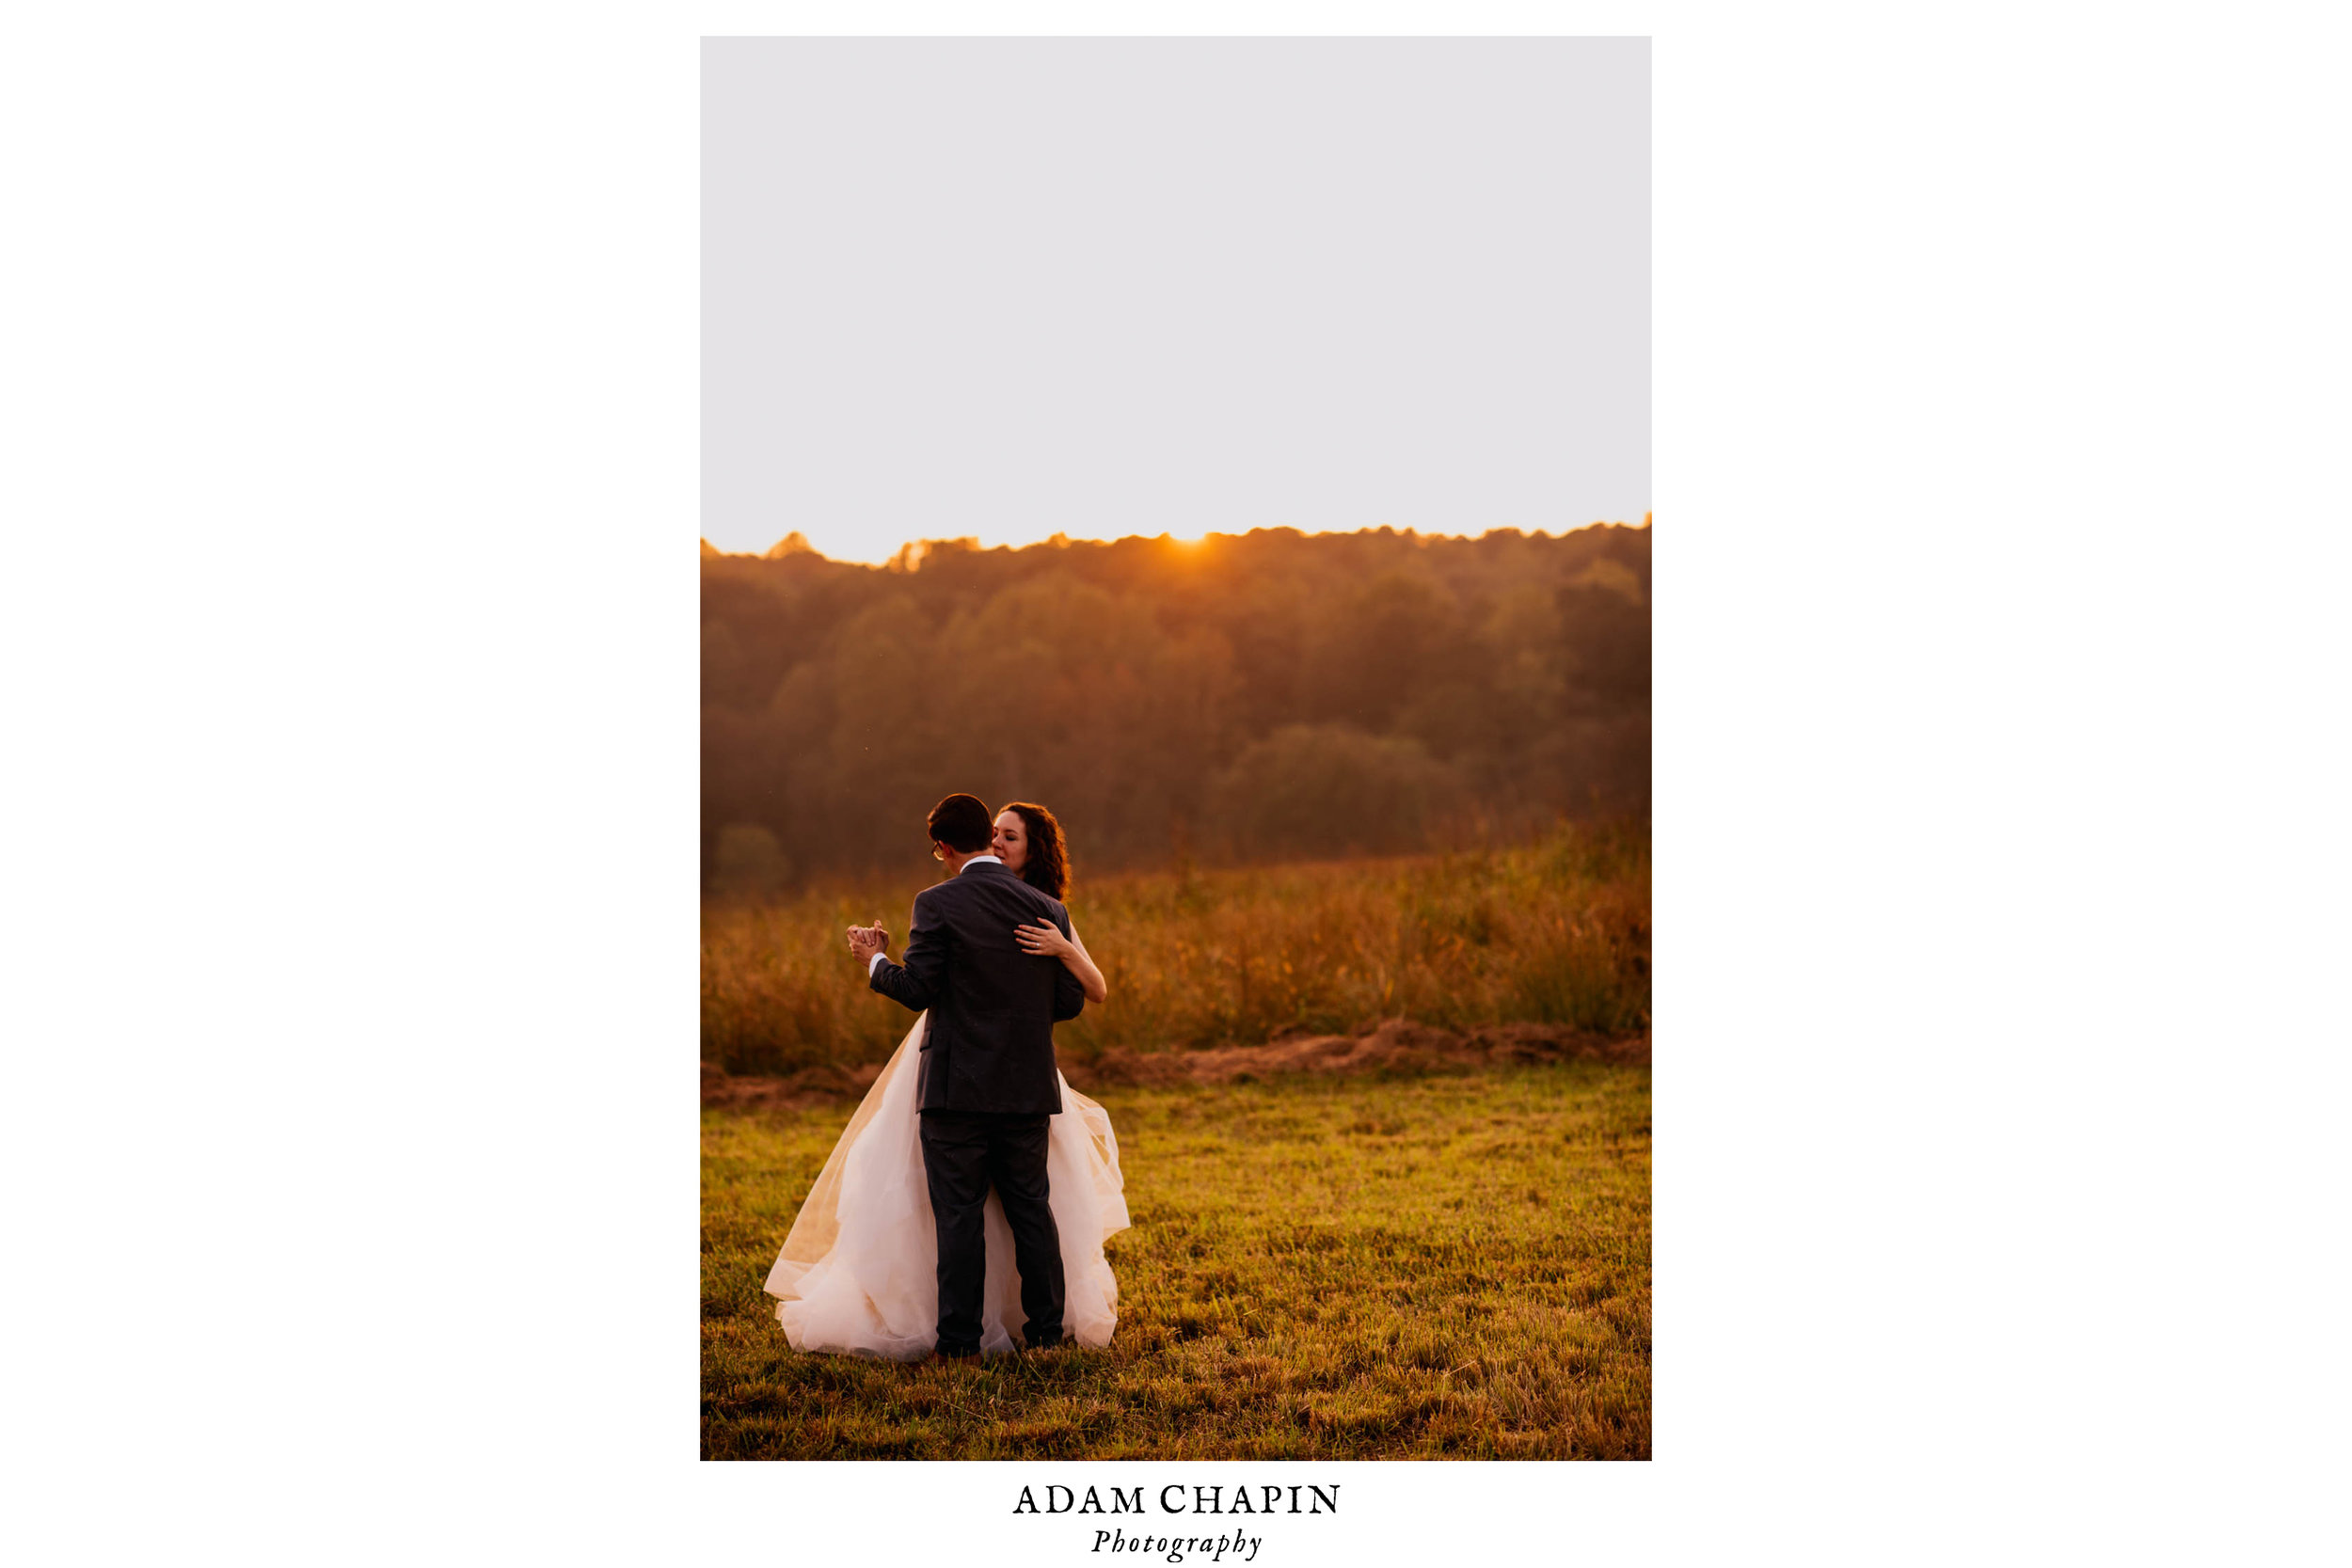 bride and groom dancing in a field in the sunset during their wedding day